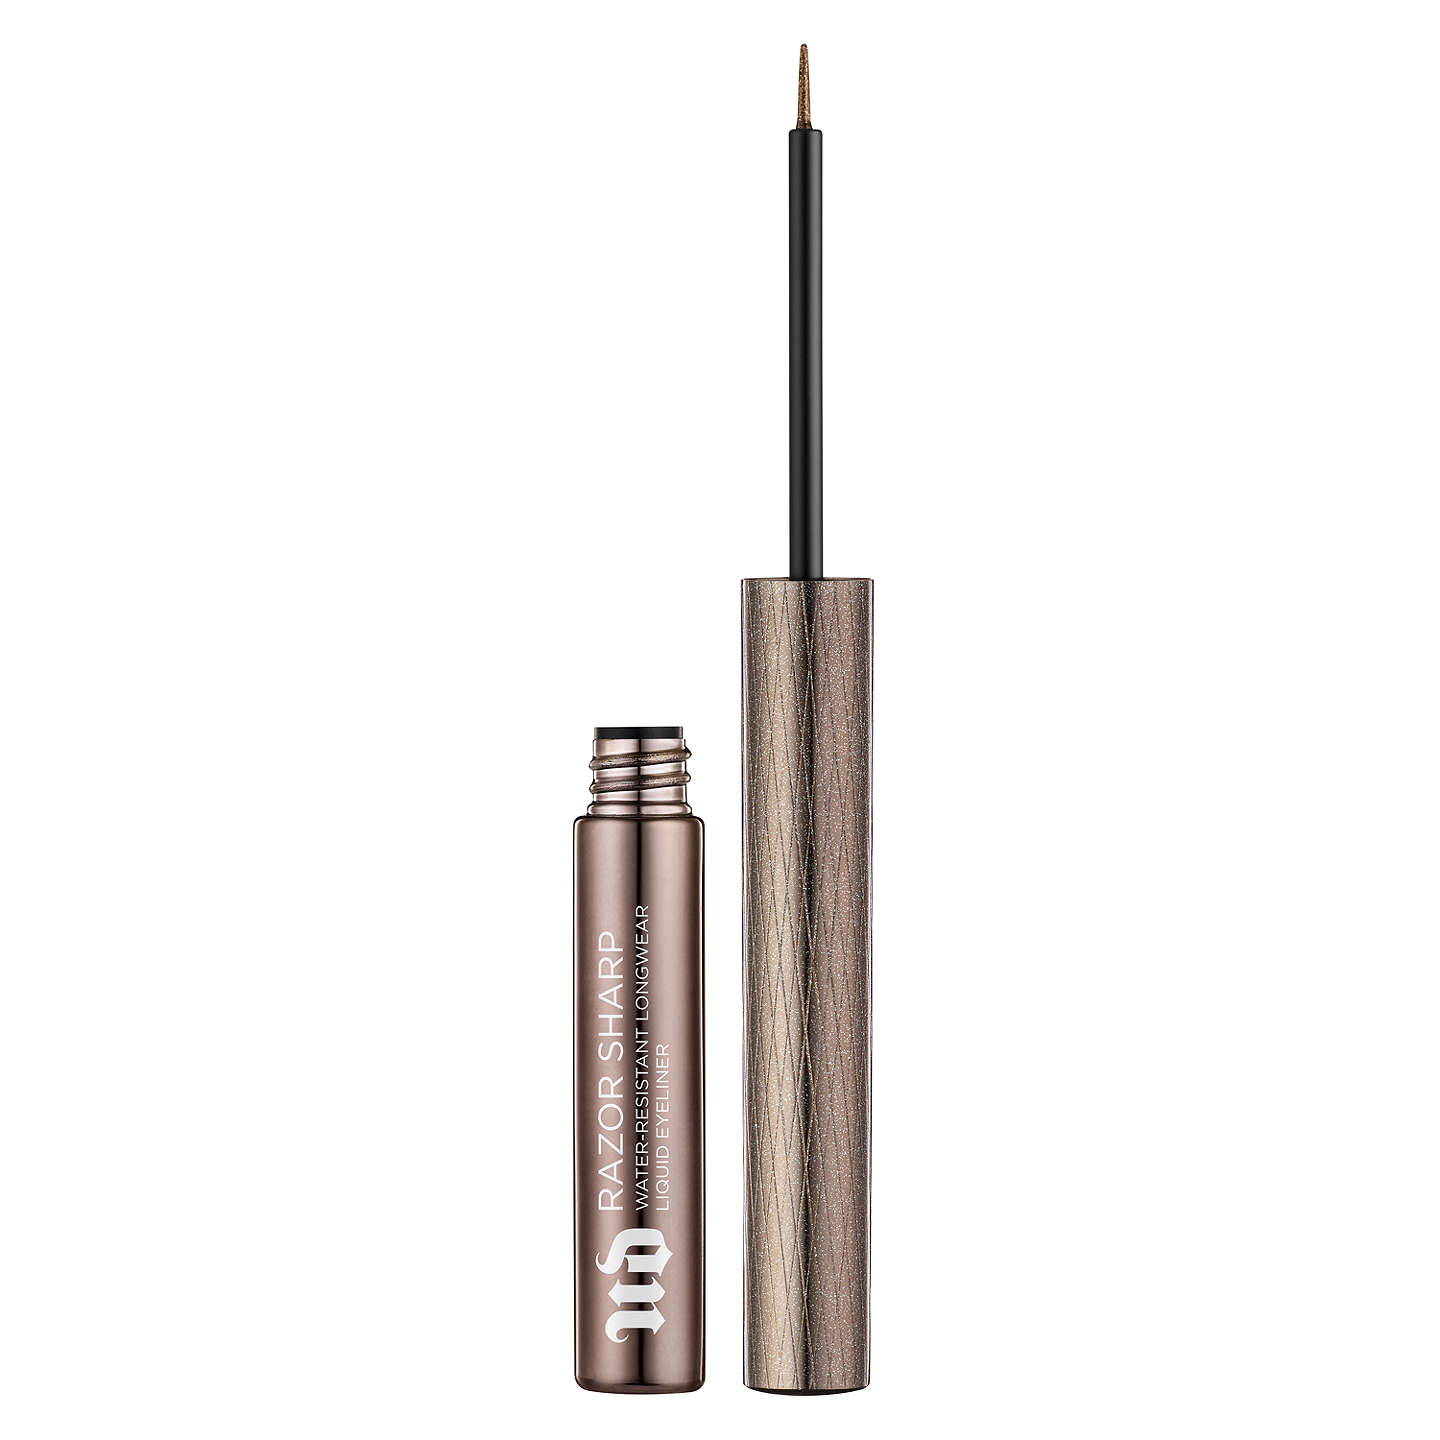 BuyUrban Decay Razor Sharp Water-Resistant Longwear Liquid Eyeliner, Dark Force Online at johnlewis.com